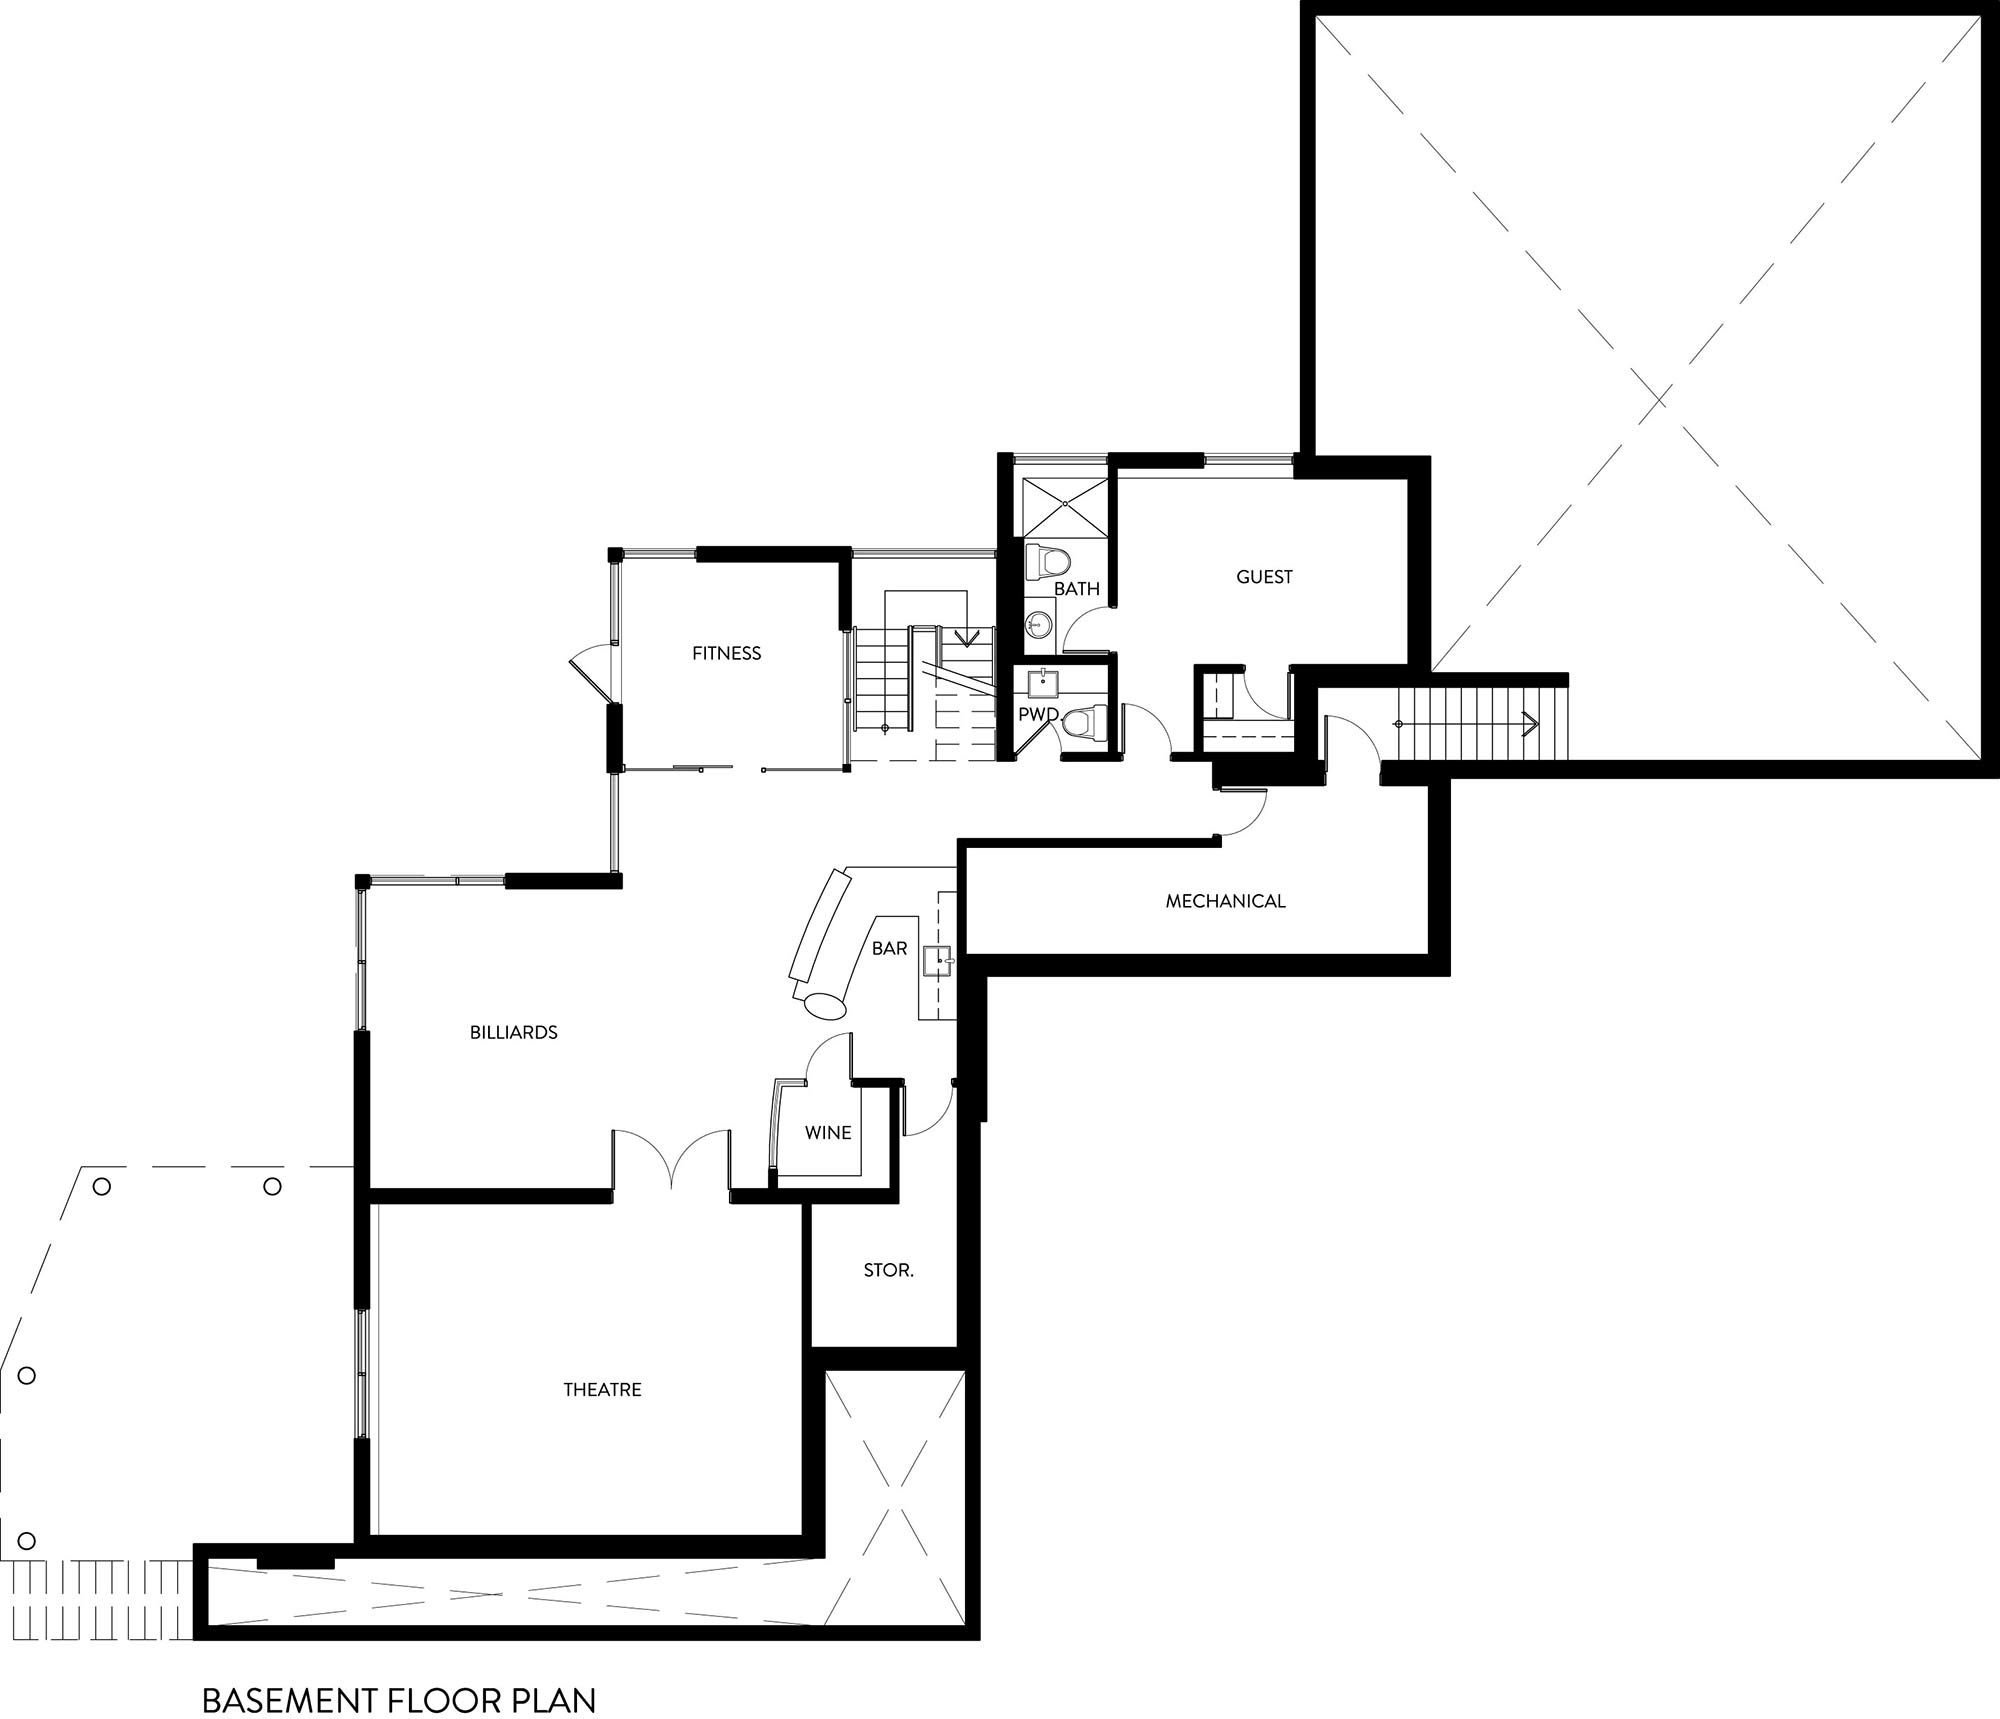 Canadian house plans with basements 28 images small for Canadian house plans with basements